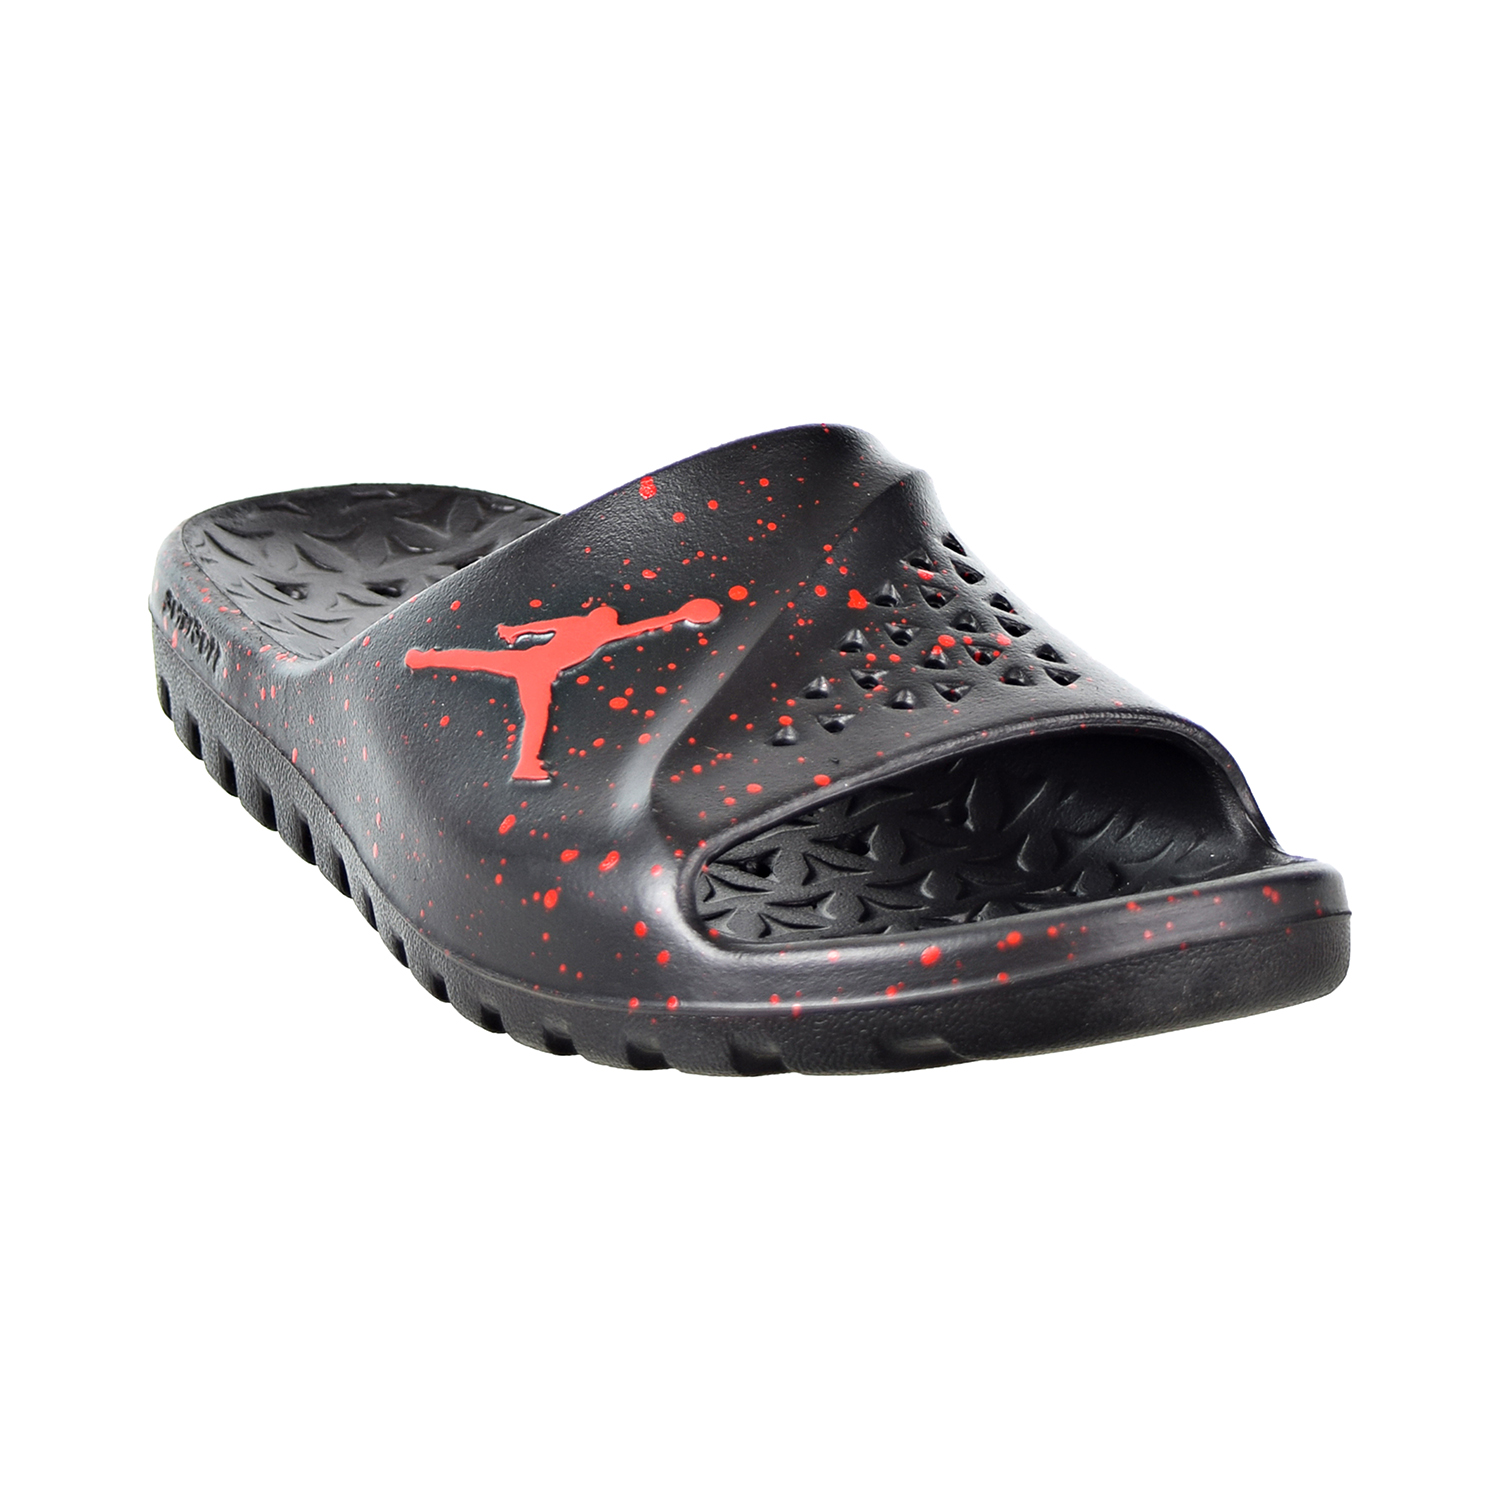 35a31839f Details about Jordan Super.Fly Team Men s Slides Black University Red  716985-062